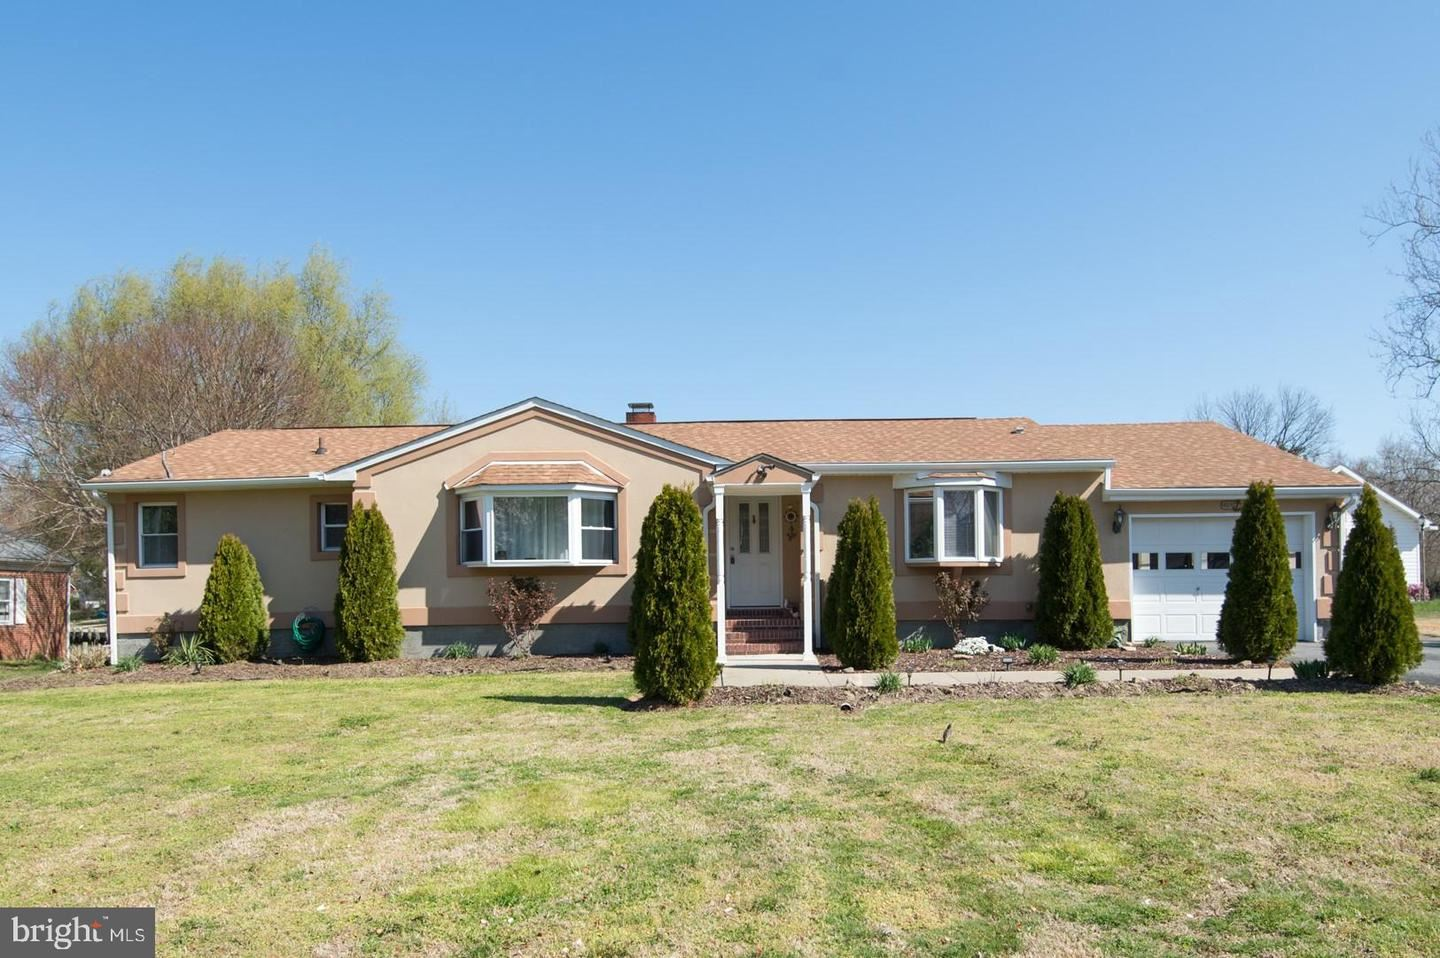 Photo for 205 LINTHICUM DR, CAMBRIDGE, MD 21613 (MLS # MDDO125522)